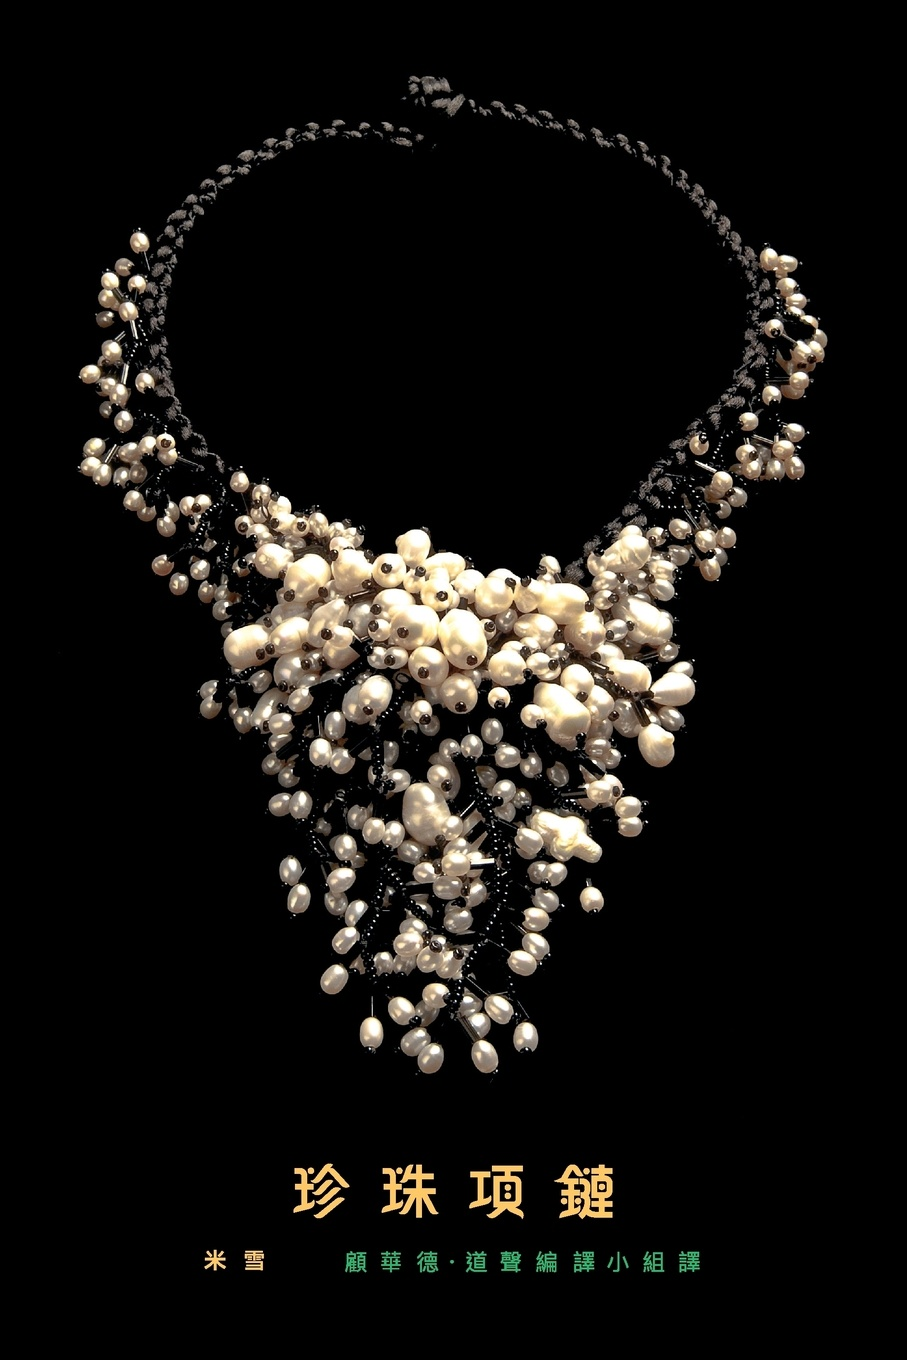 Mi Xue A Pearl Necklace. traditional Chinese translation